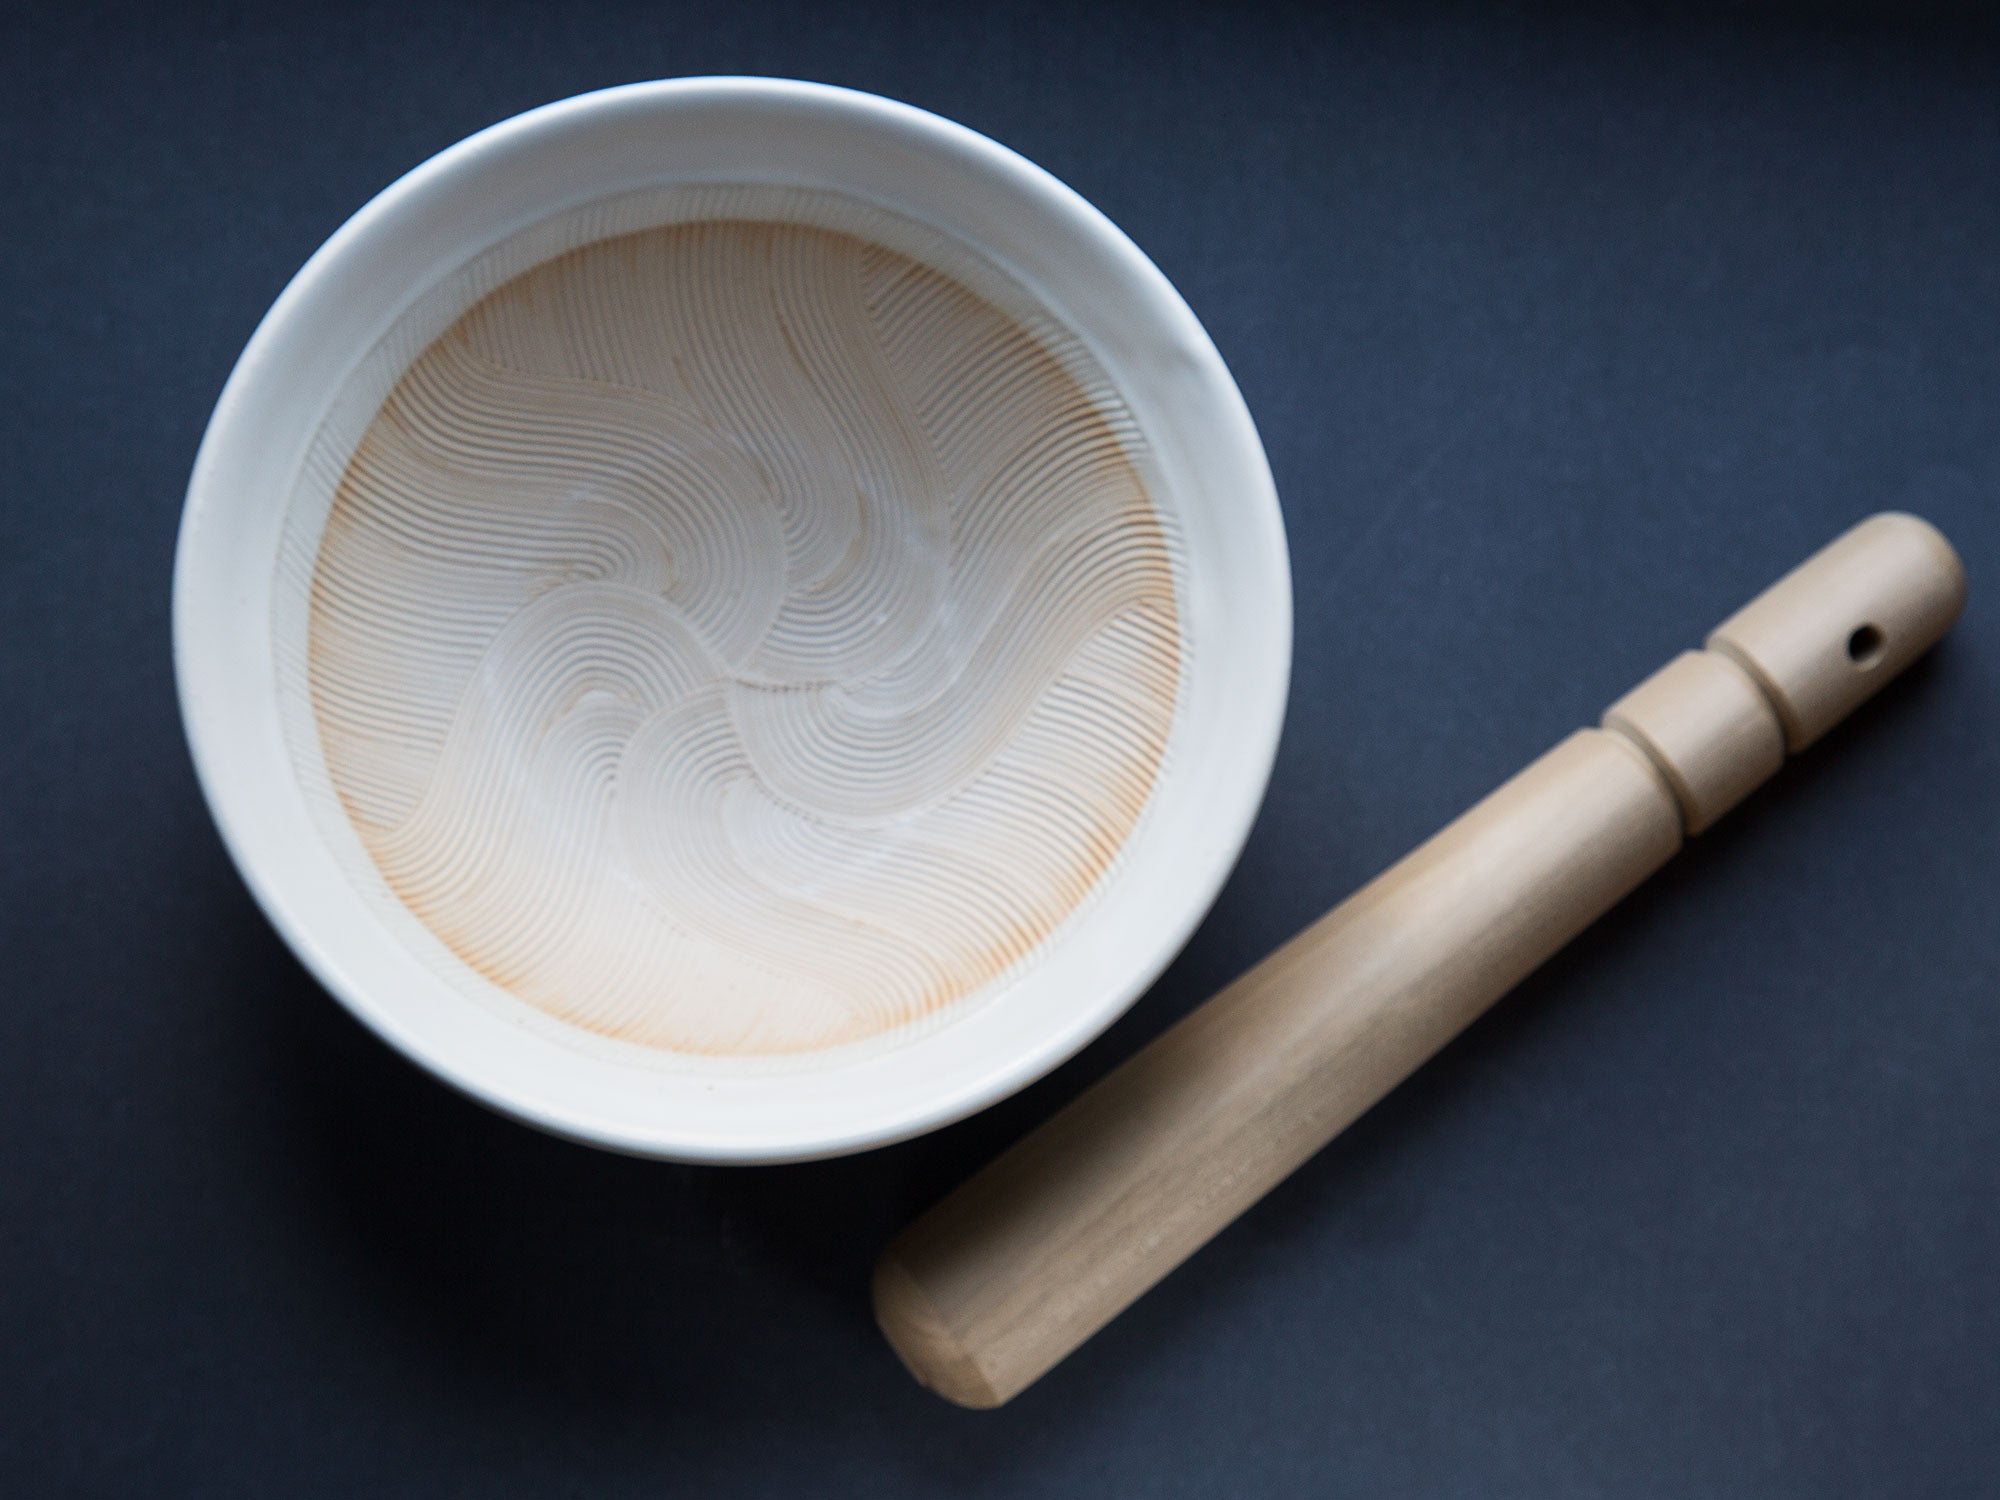 Japanese Mortar and Pestle